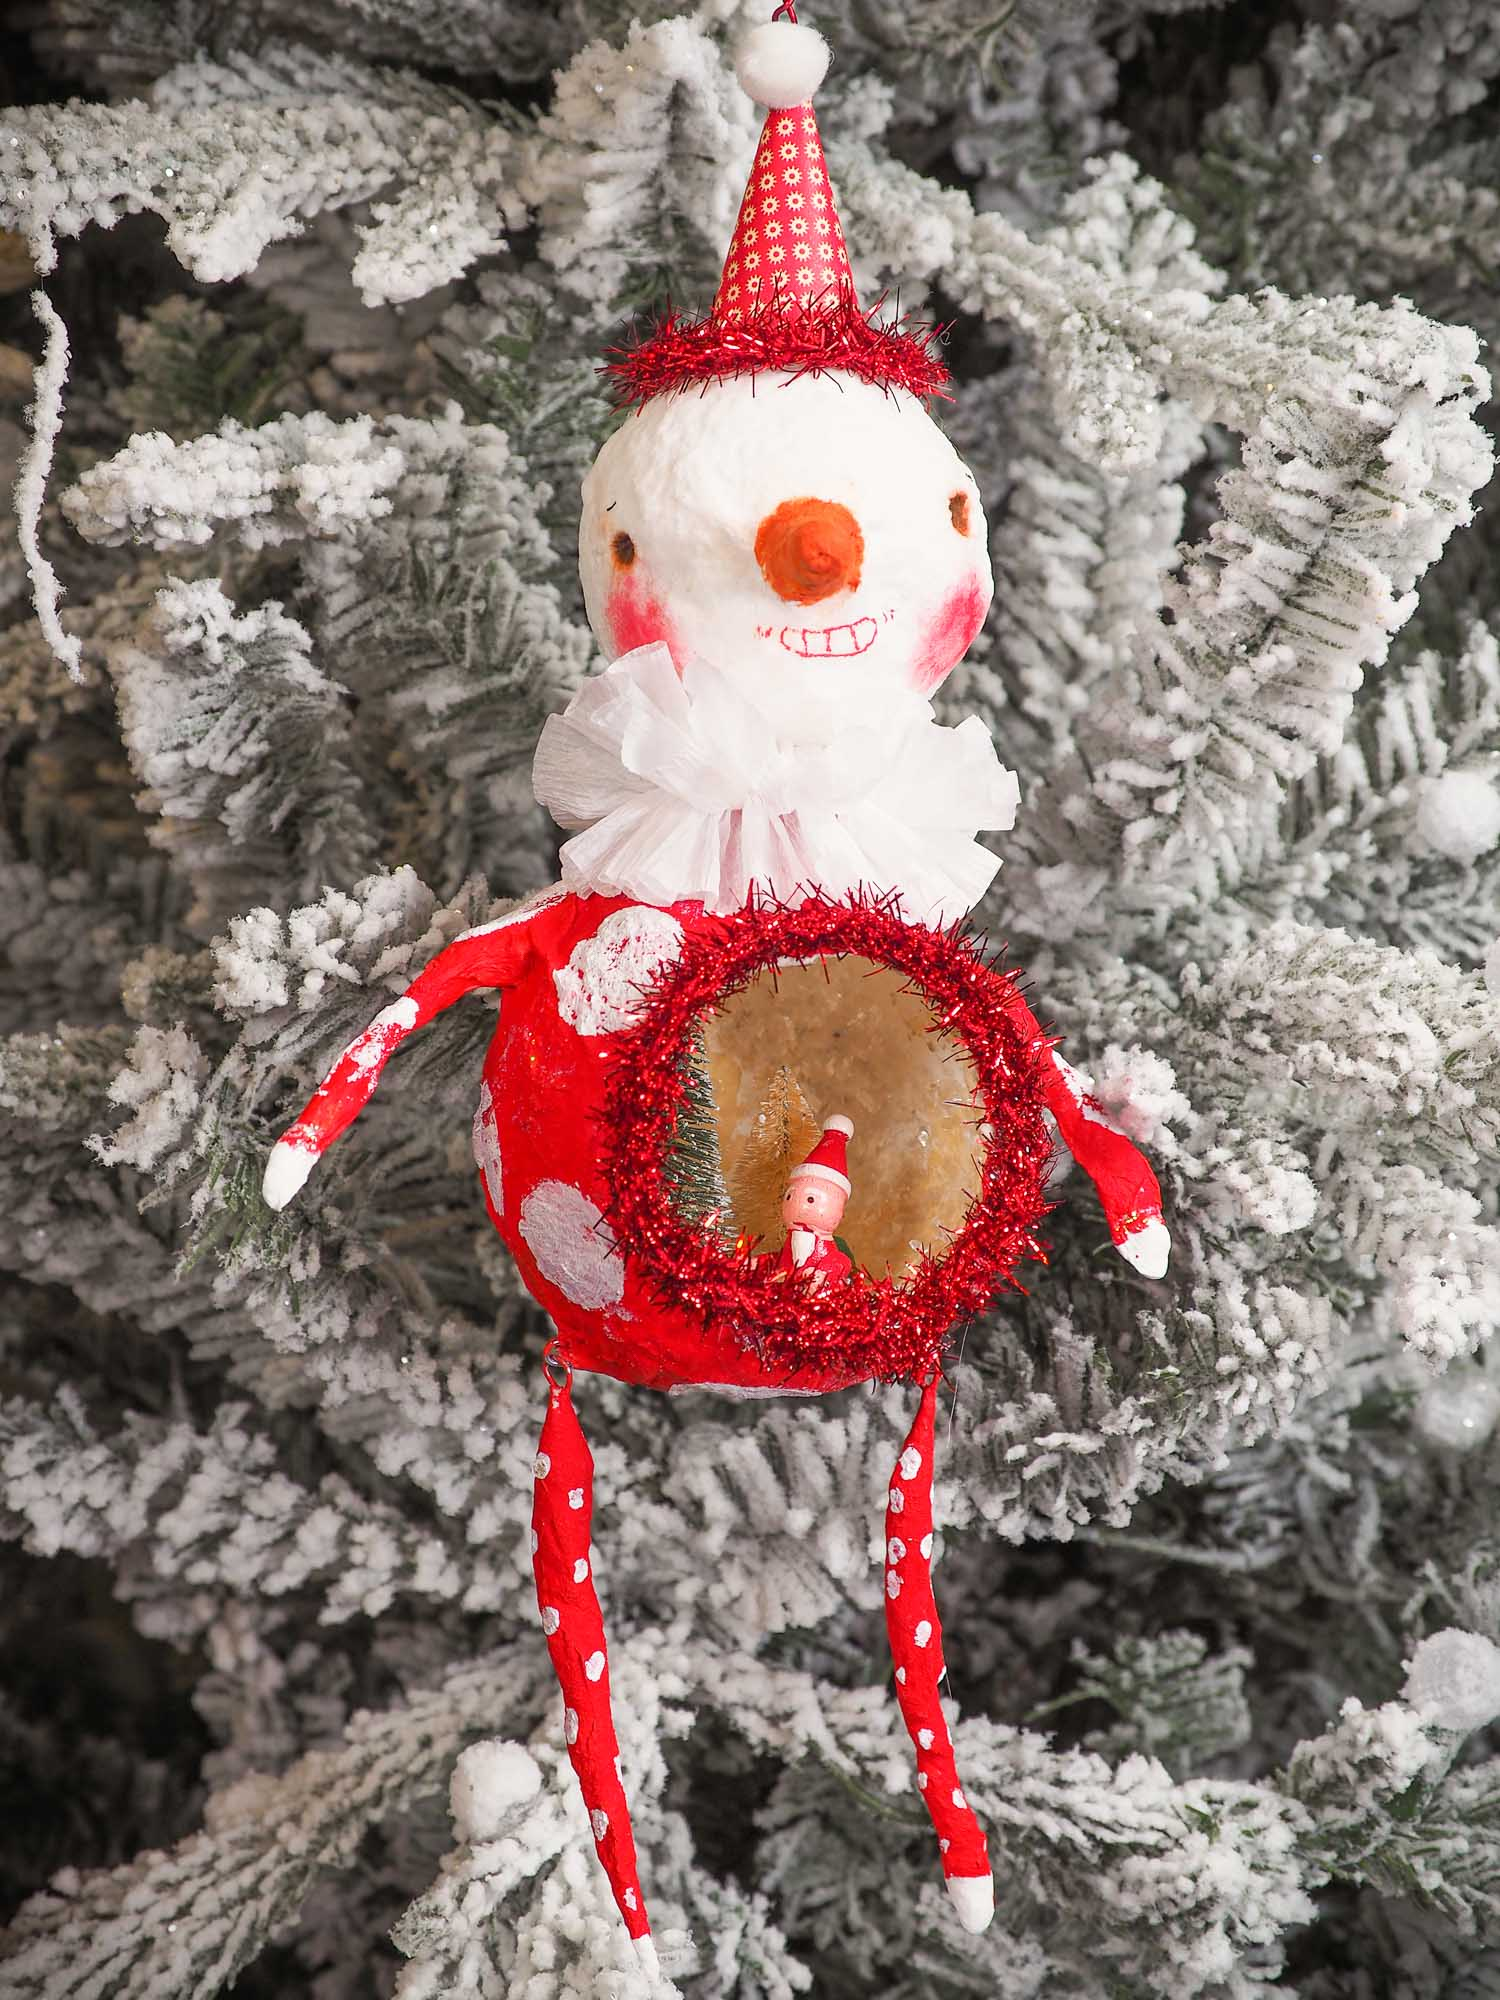 Adorable handmade spun cotton Art Doll Christmas tree ornament by Idania Salcido, the artist by Danita Art. Hand painted by the artist holiday figurine with paper hat with tinsel and vintage style garlands and a tiny Christmas tree. Hang this handmade ornament from your Christmas tree or use as Holiday decoration.